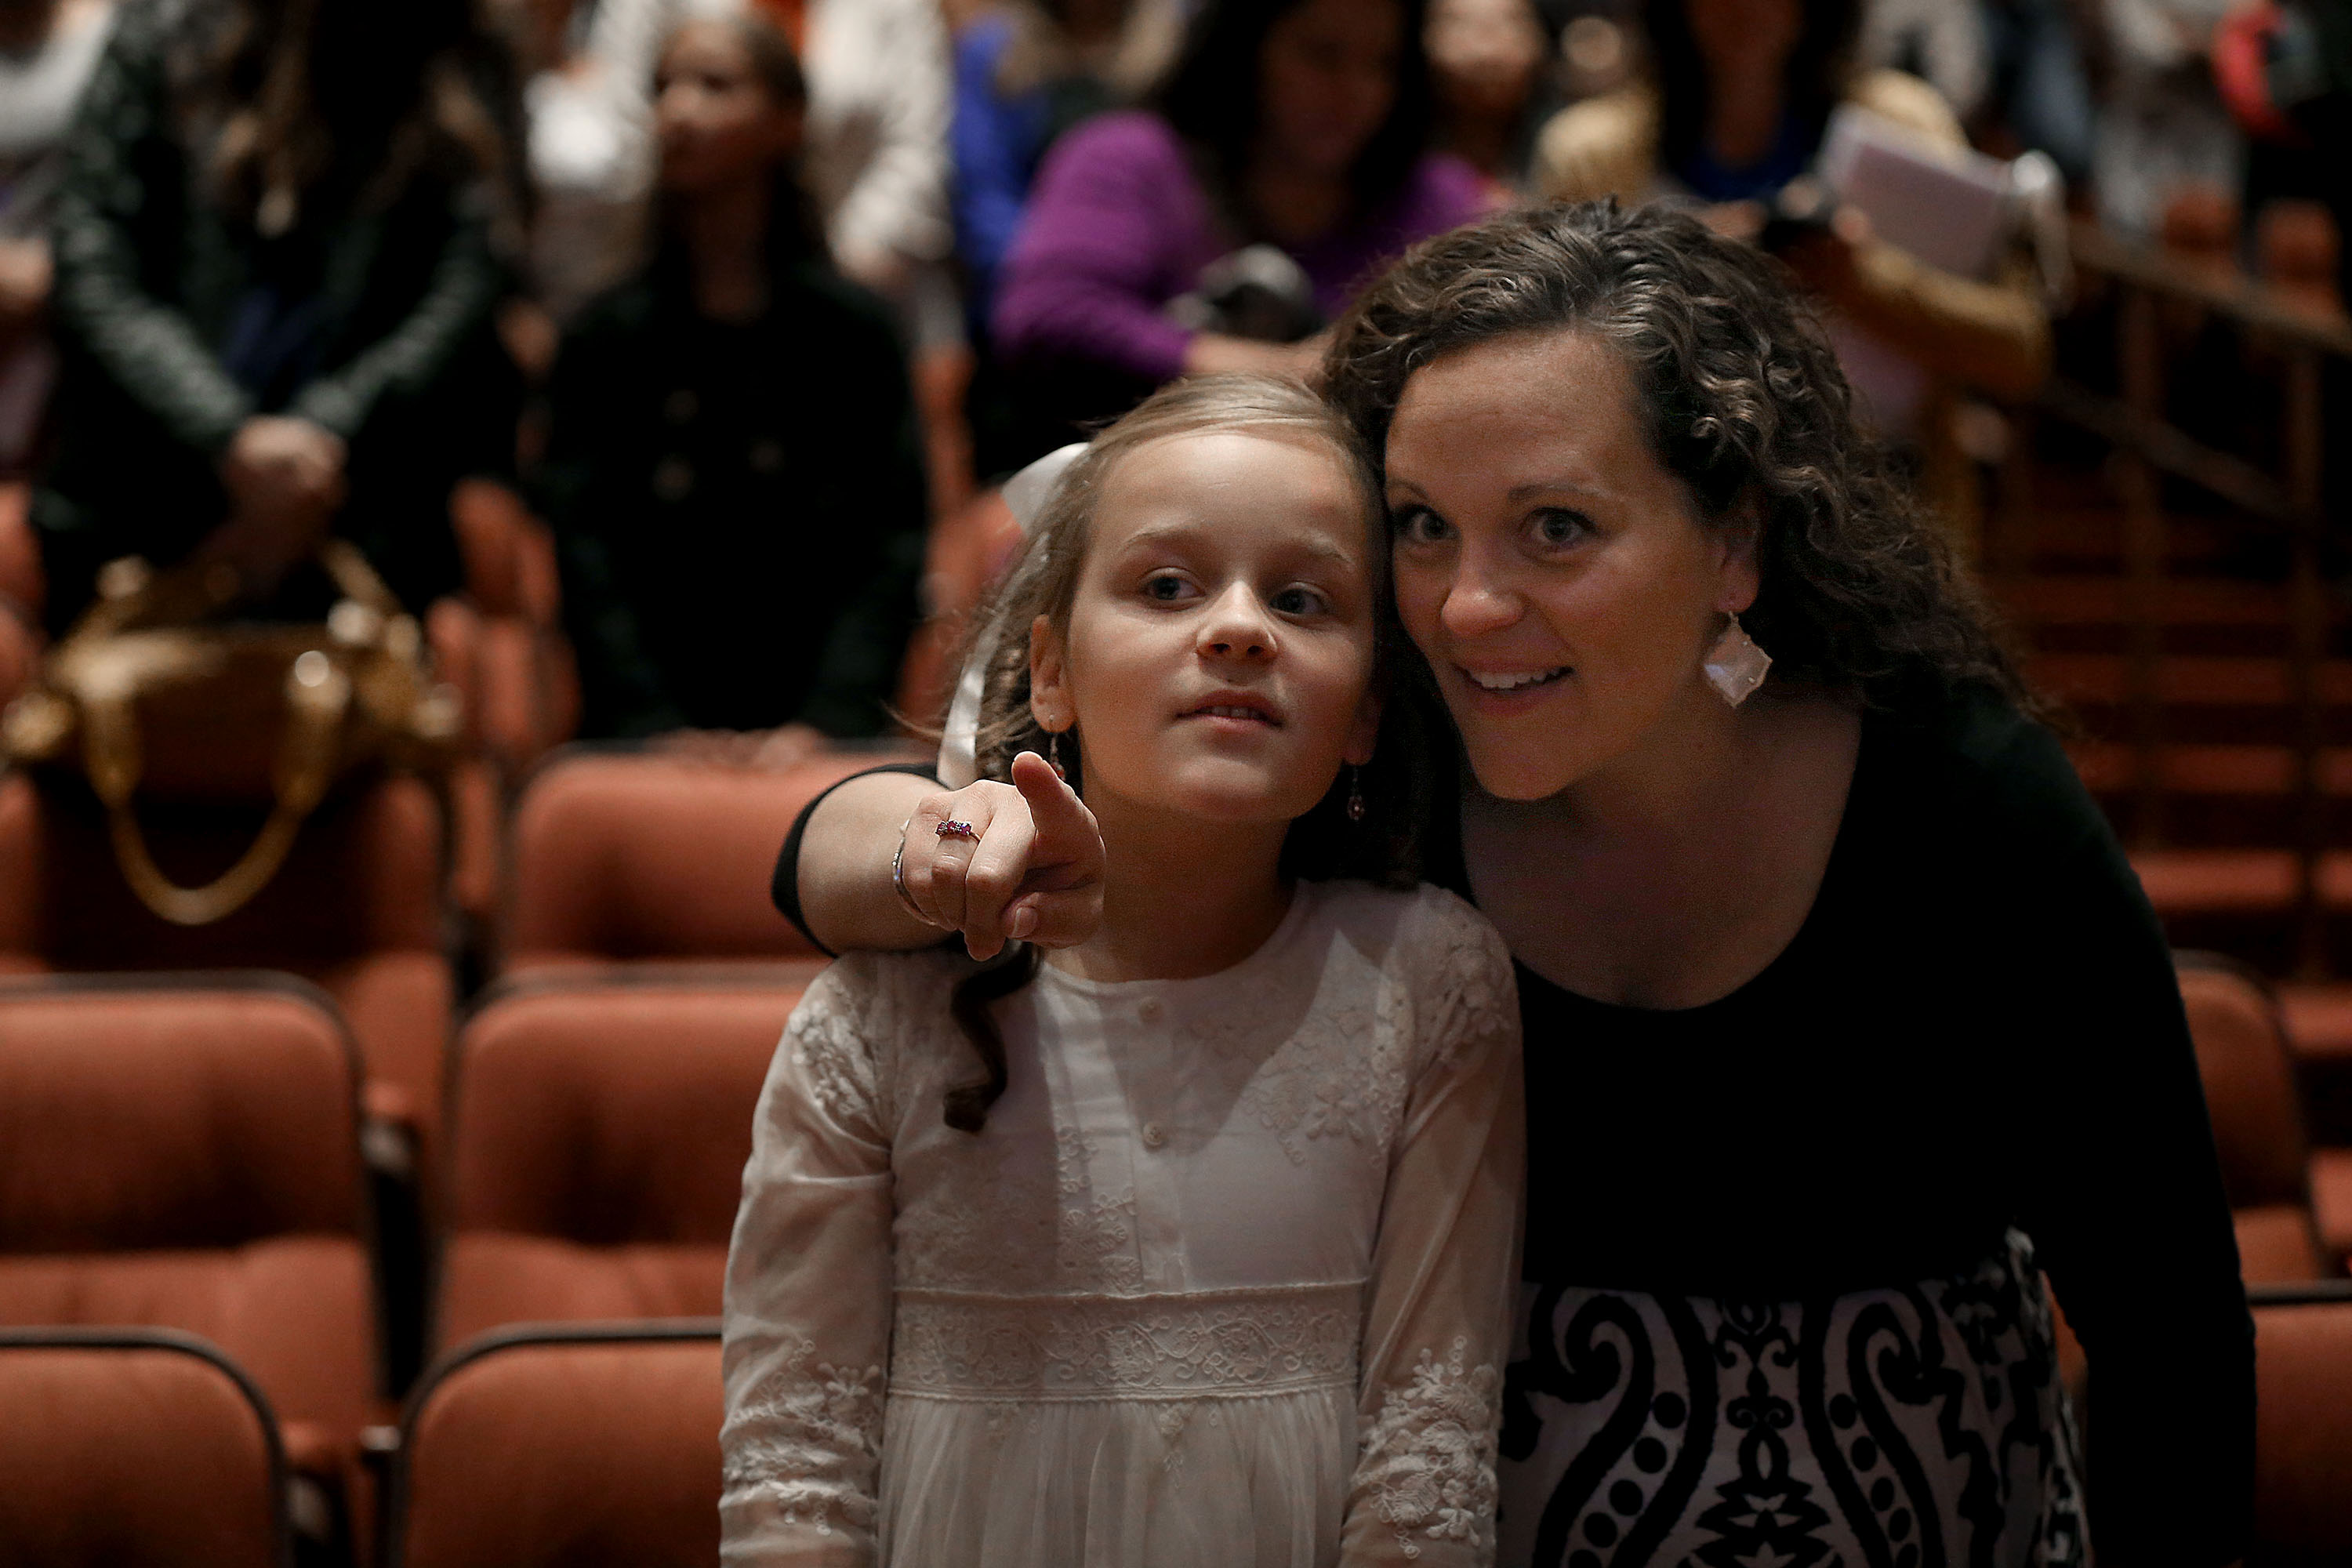 Eliza Van Drimmelen, 10, and her mother, Marquessa, point out church leaders as they enter the general women's session of the 188th Semiannual General Conference of The Church of Jesus Christ of Latter-day Saints held in the Conference Center in downtown Salt Lake City on Saturday, Oct. 6, 2018.